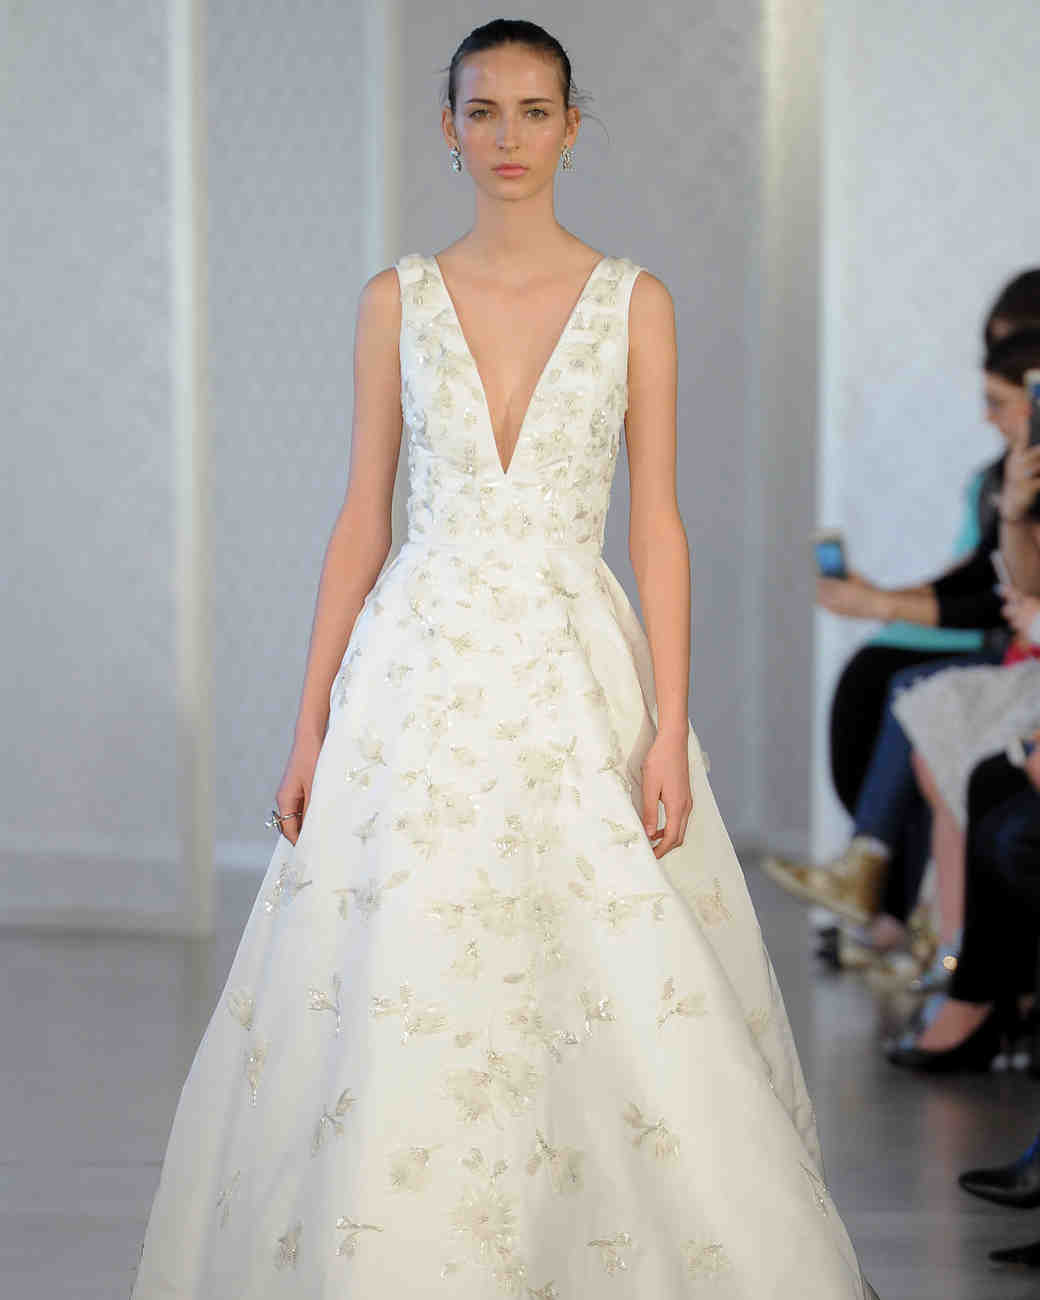 Dress Gowns For Weddings: Oscar De La Renta Spring 2017 Wedding Dress Collection